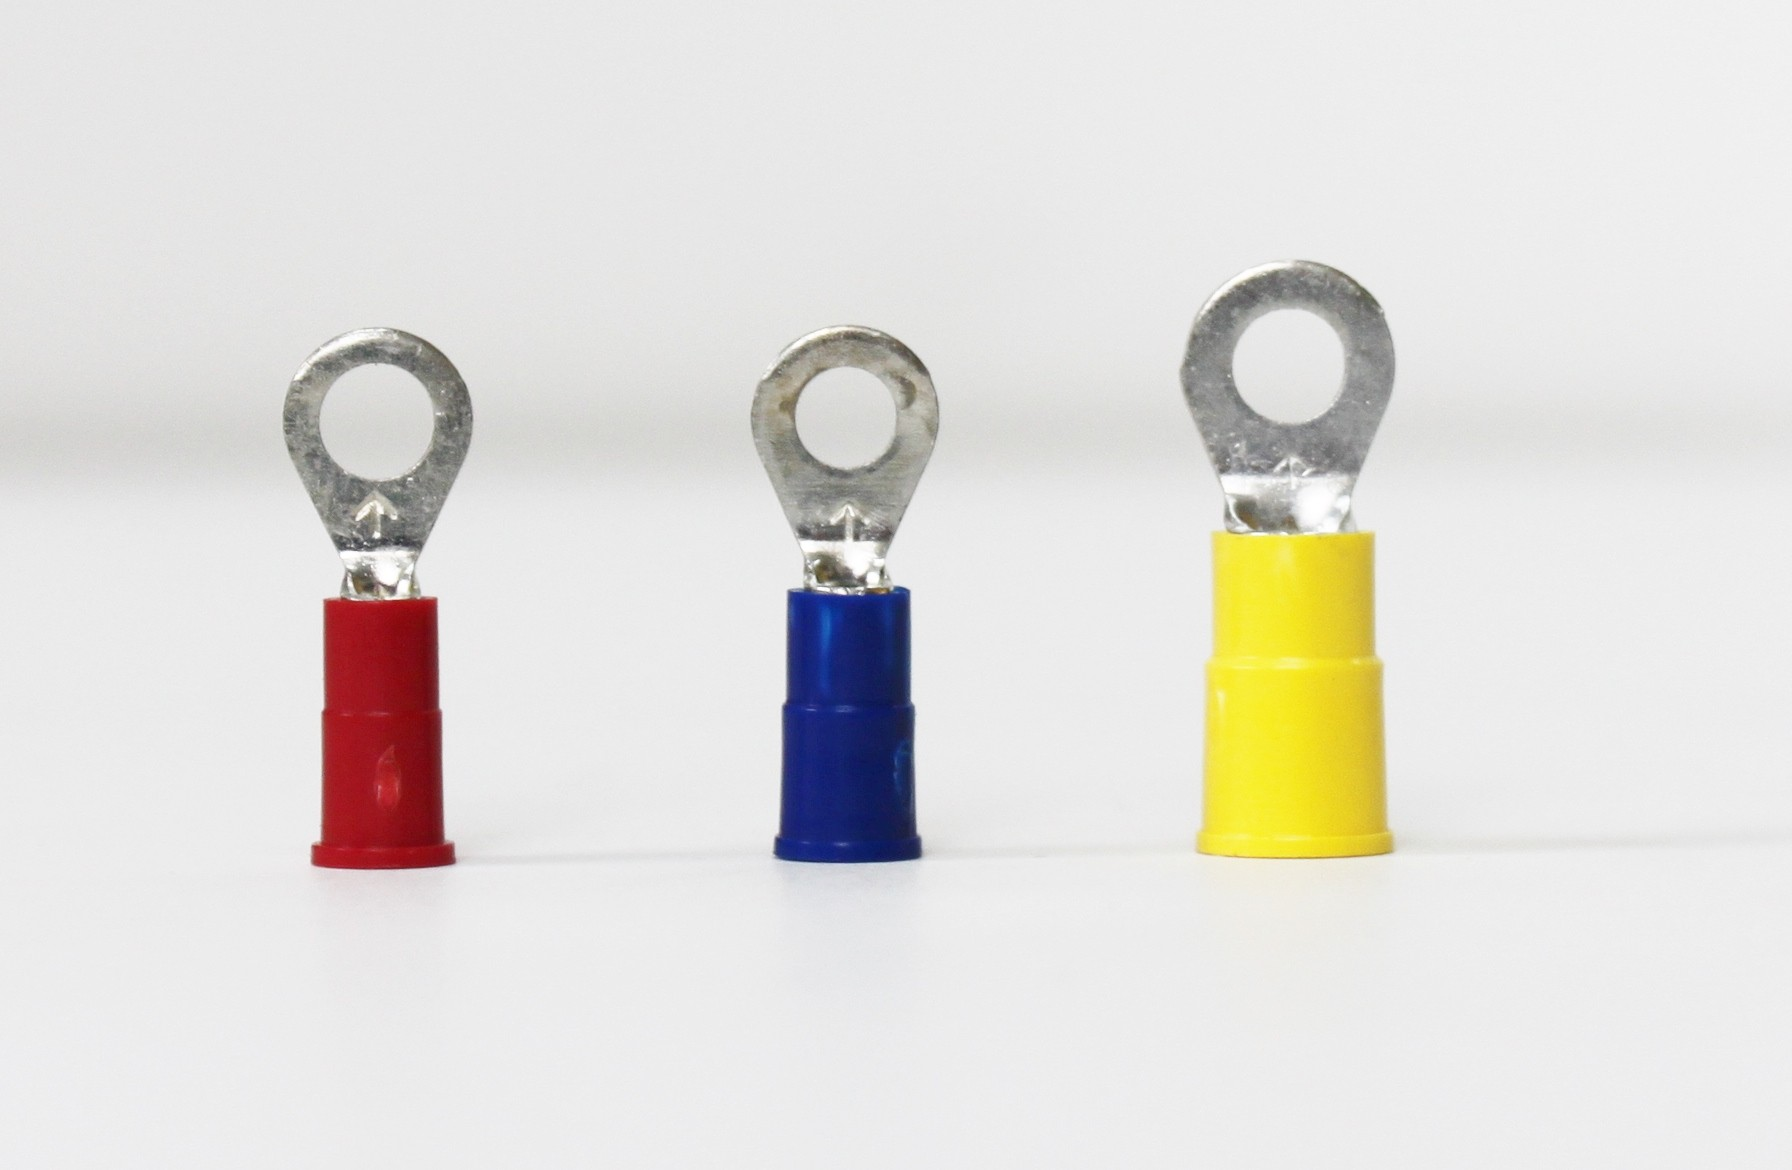 Vinyl Insulated Butted Seam Ring Terminals (16-14)